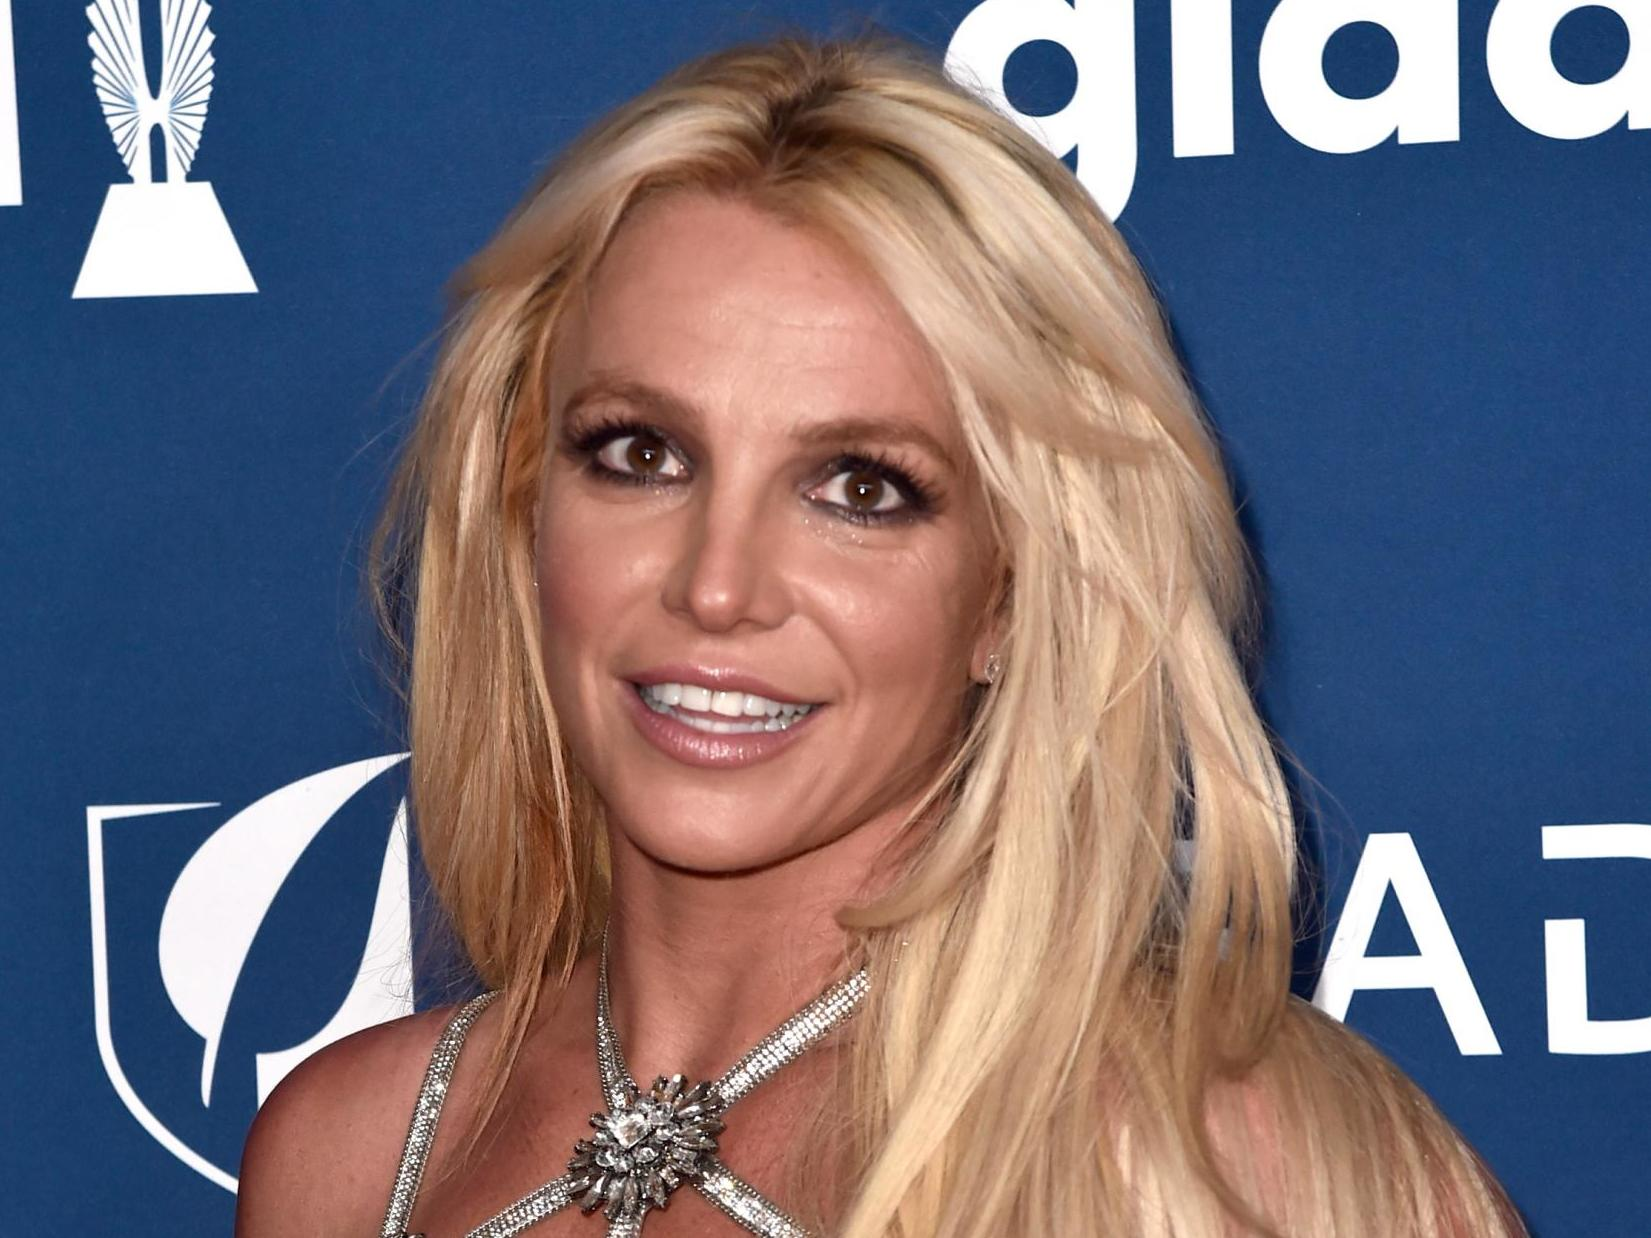 Britney Spears checks into mental health facility after ...